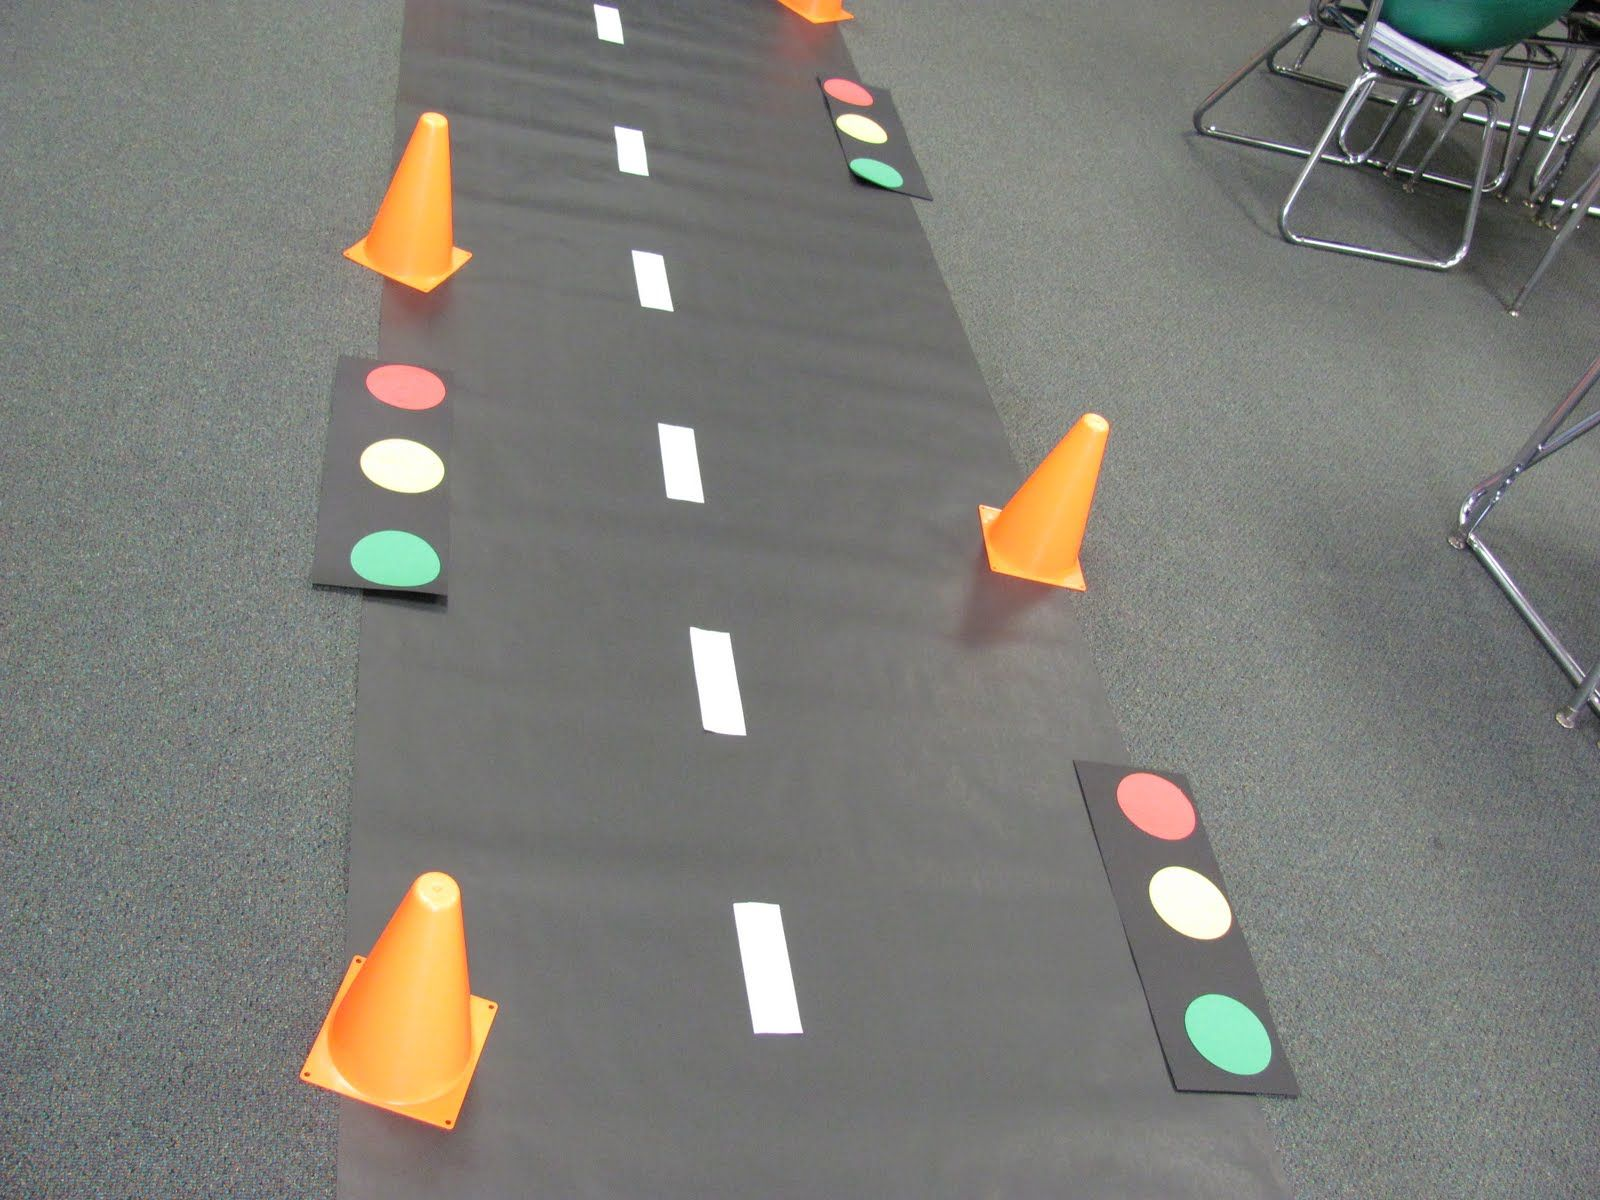 road sign classroom ideas | ... classroom and find themselves among traffic cones, traffic signs and